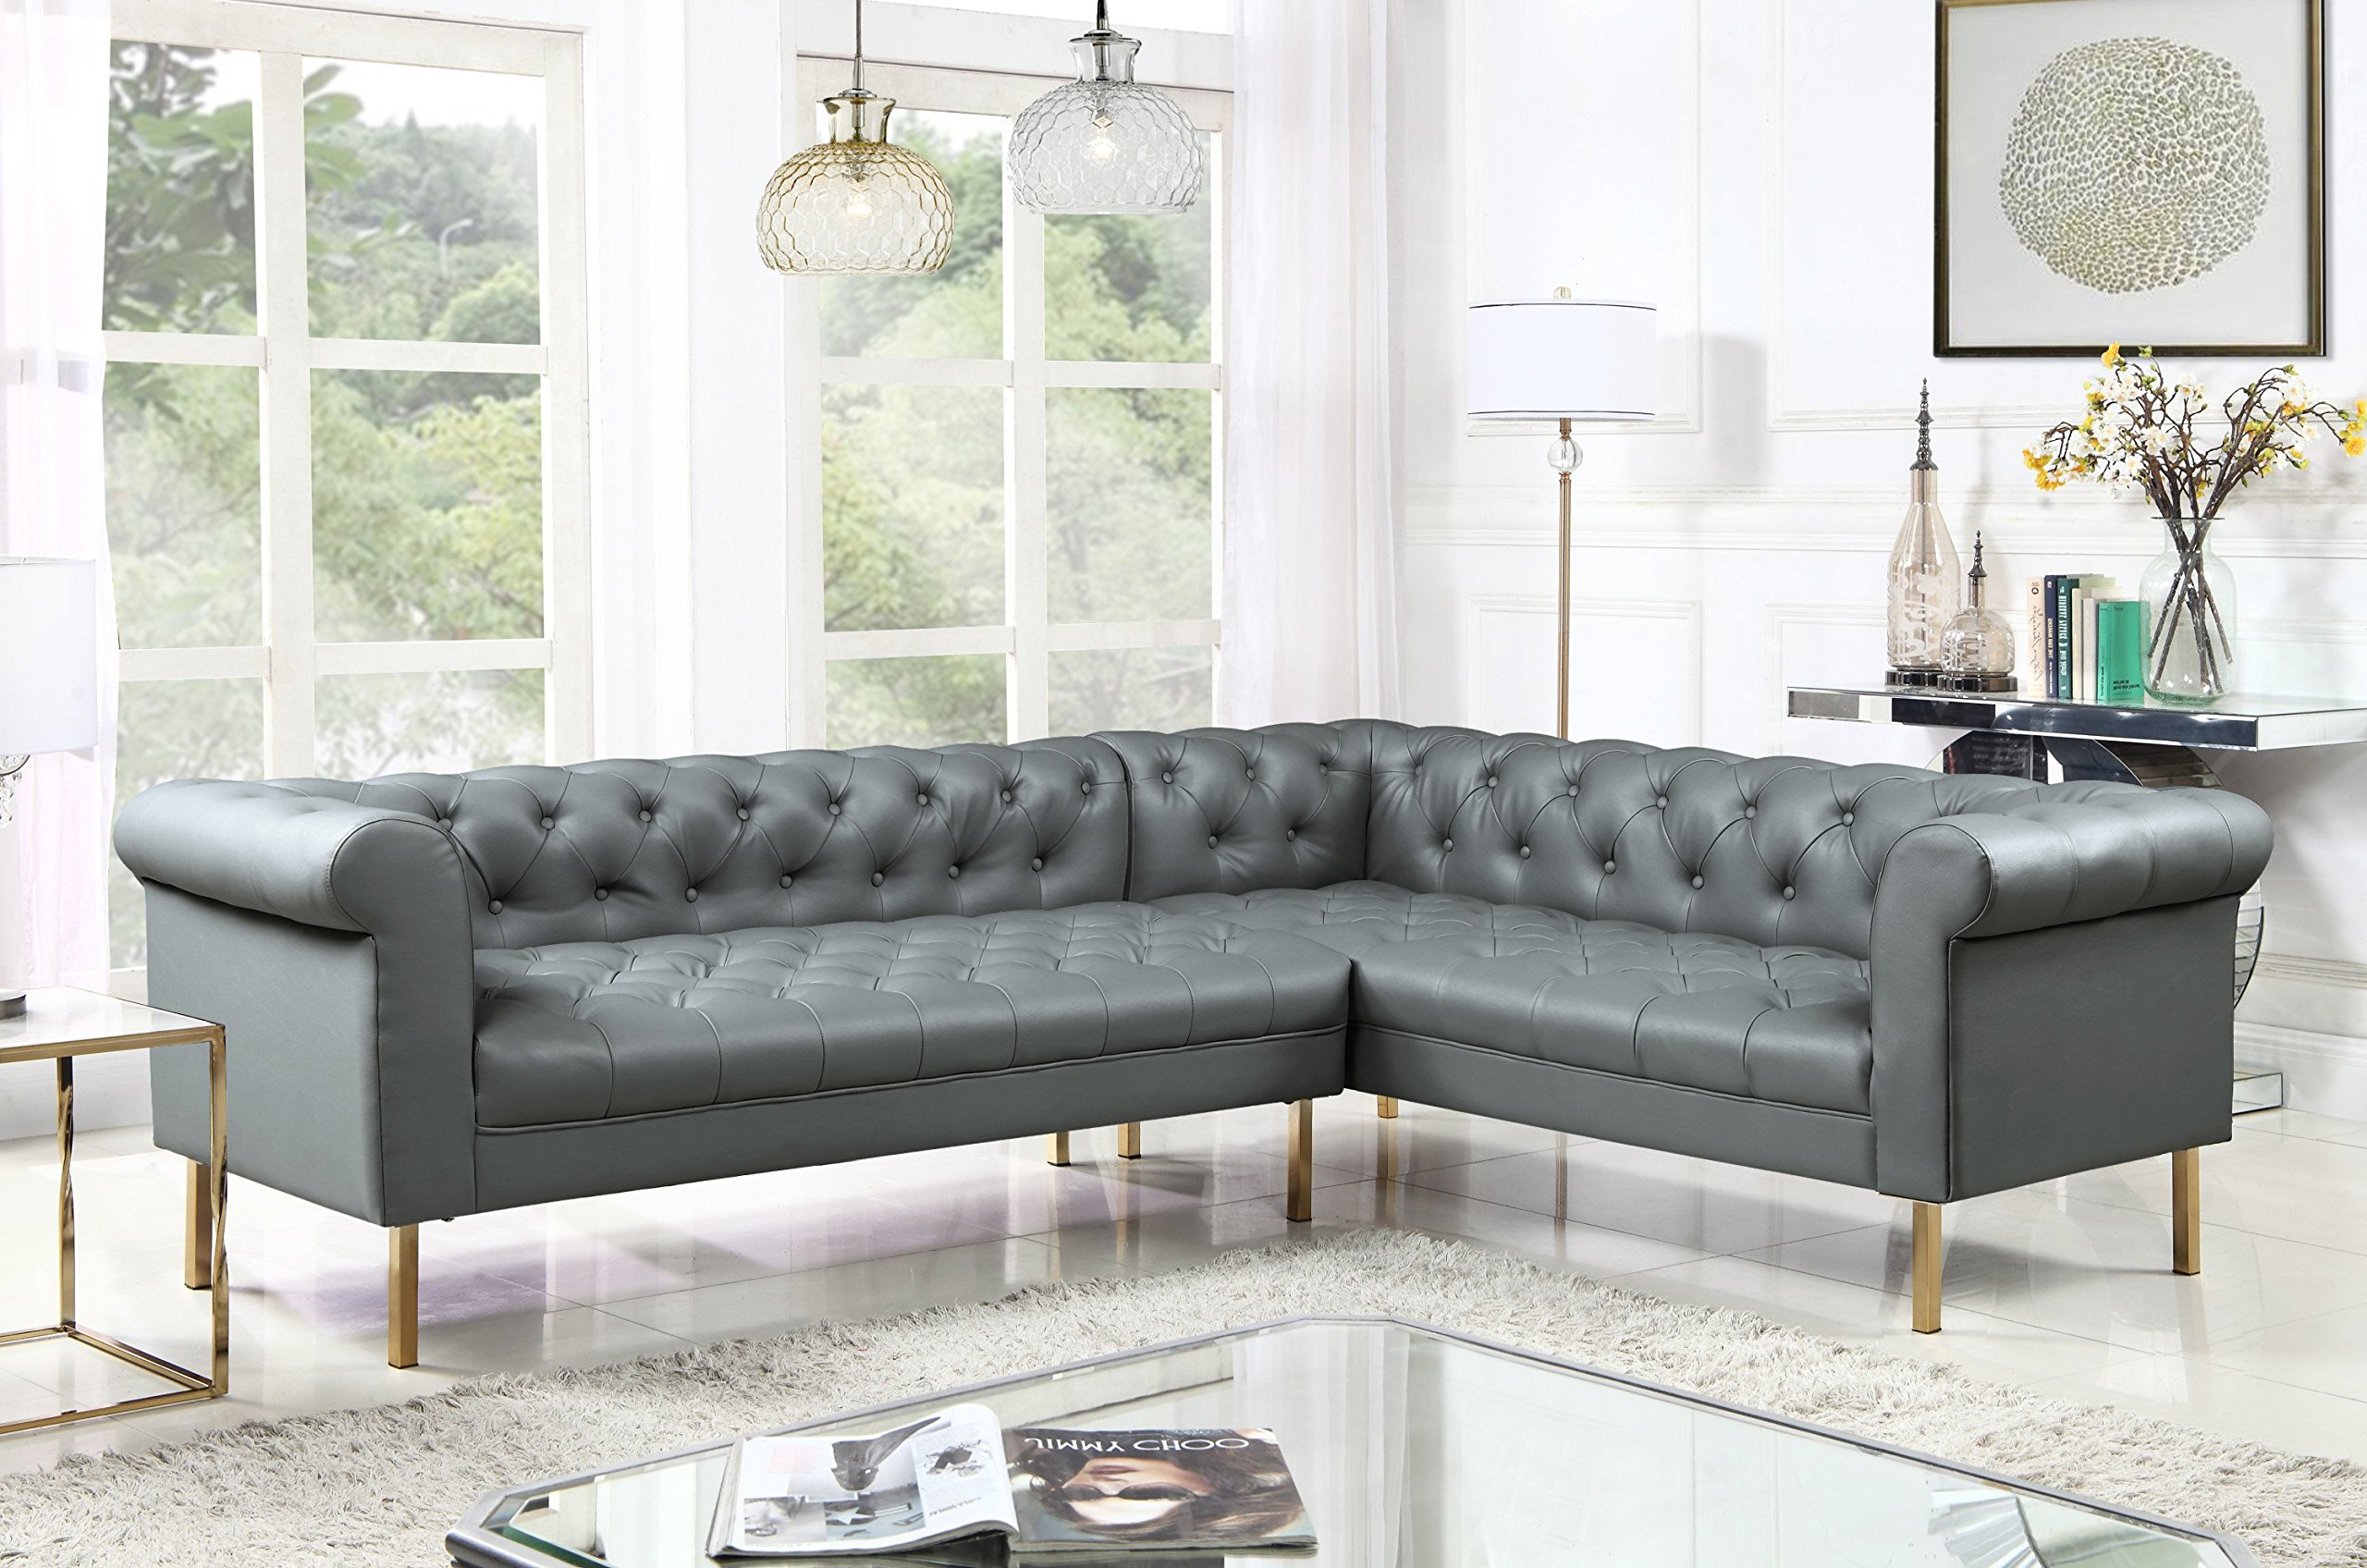 Iconic Home Giovanni Right Facing Sectional Sofa L Shape PU Leather Upholstered Button Tufted Roll Arm Design Solid Gold Tone Metal Legs, Modern Transitional, Grey by Iconic Home